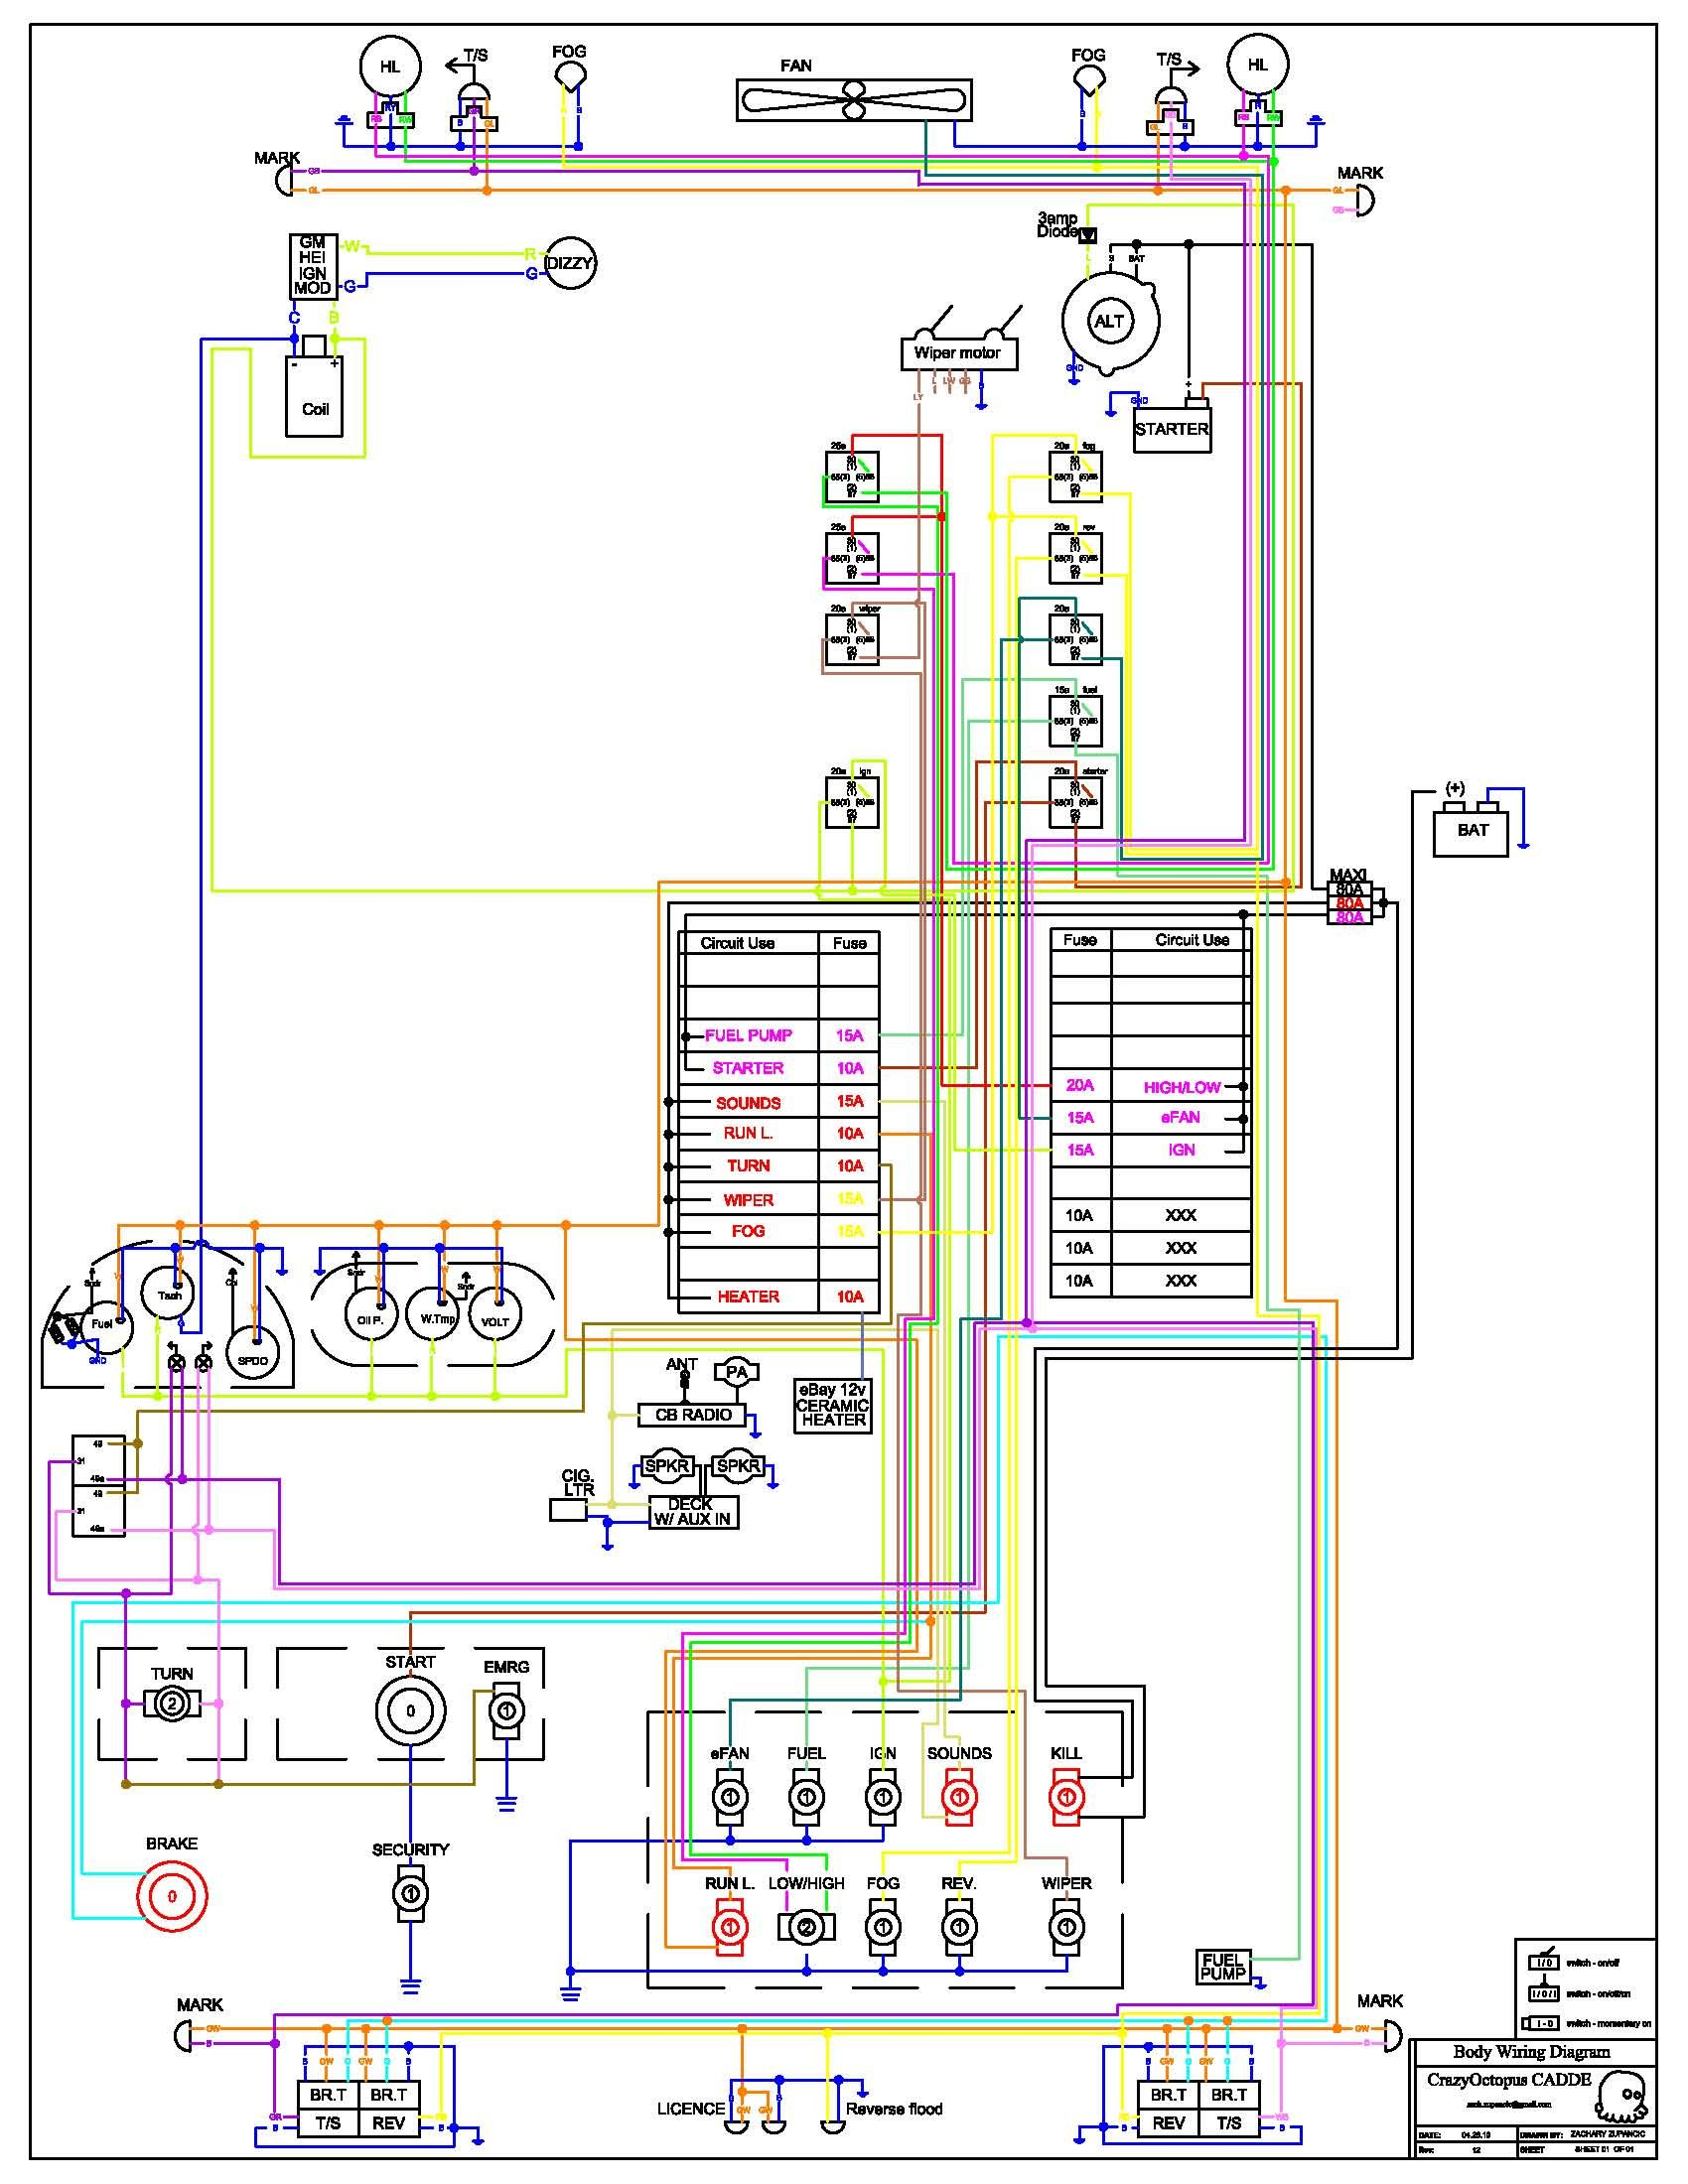 Race Car Wiring Diagrams - Just Another Wiring Diagram Blog Race Car Wiring Diagram Hei on race car wiring forum, race car wiring for gauges, race car wiring systems, race car wiring setup, race car wiring schematic, race car wiring using relays,